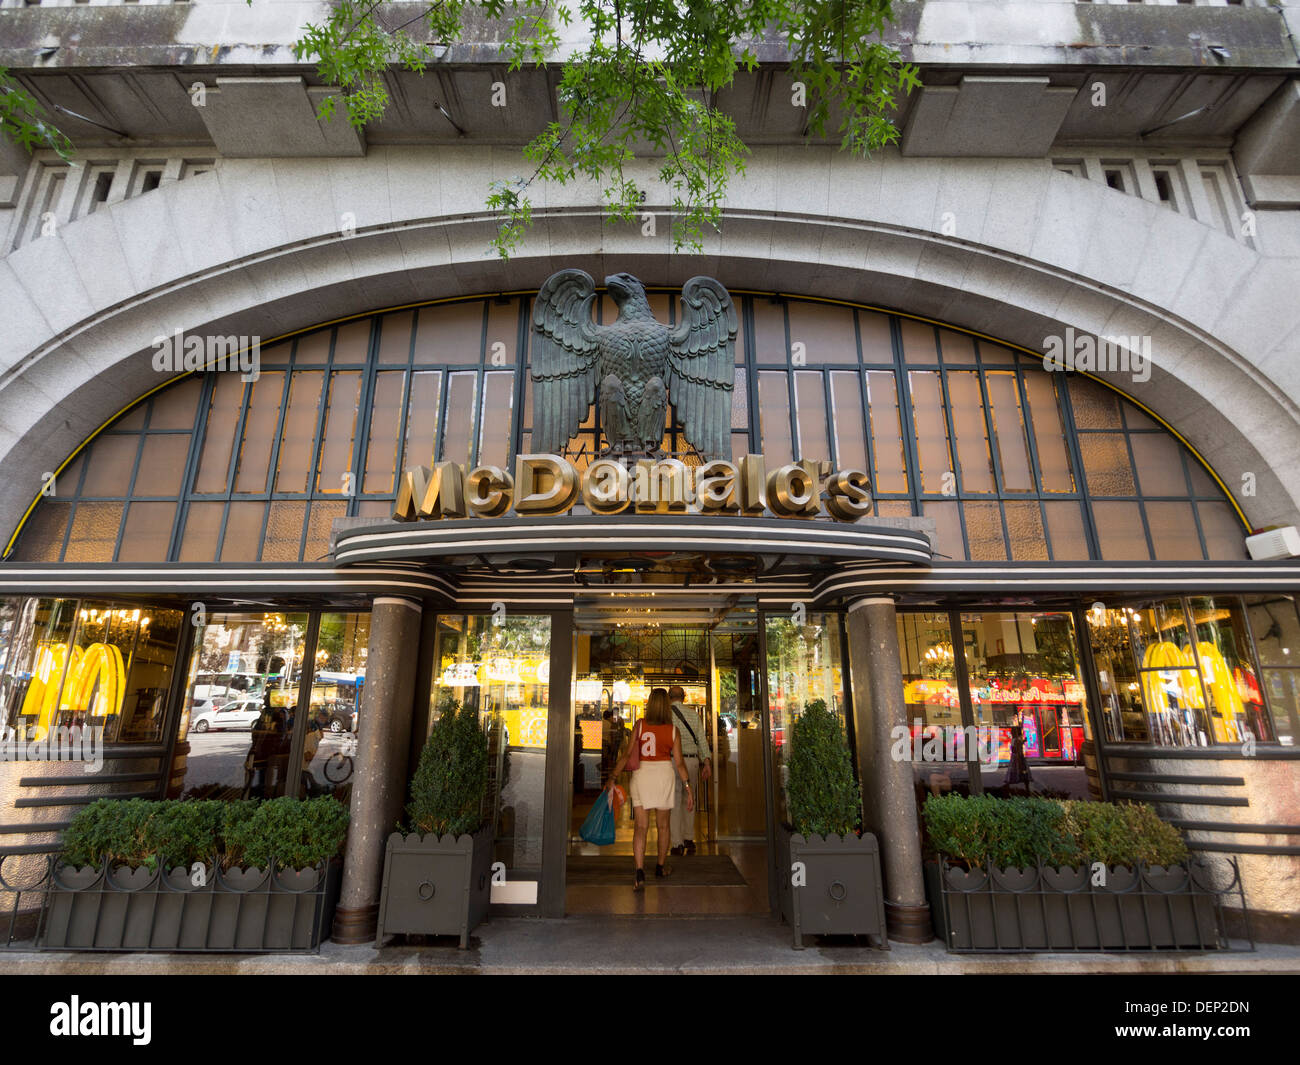 Mcdonalds Store Front Cafe Restaurant High Resolution Stock Photography And Images Alamy